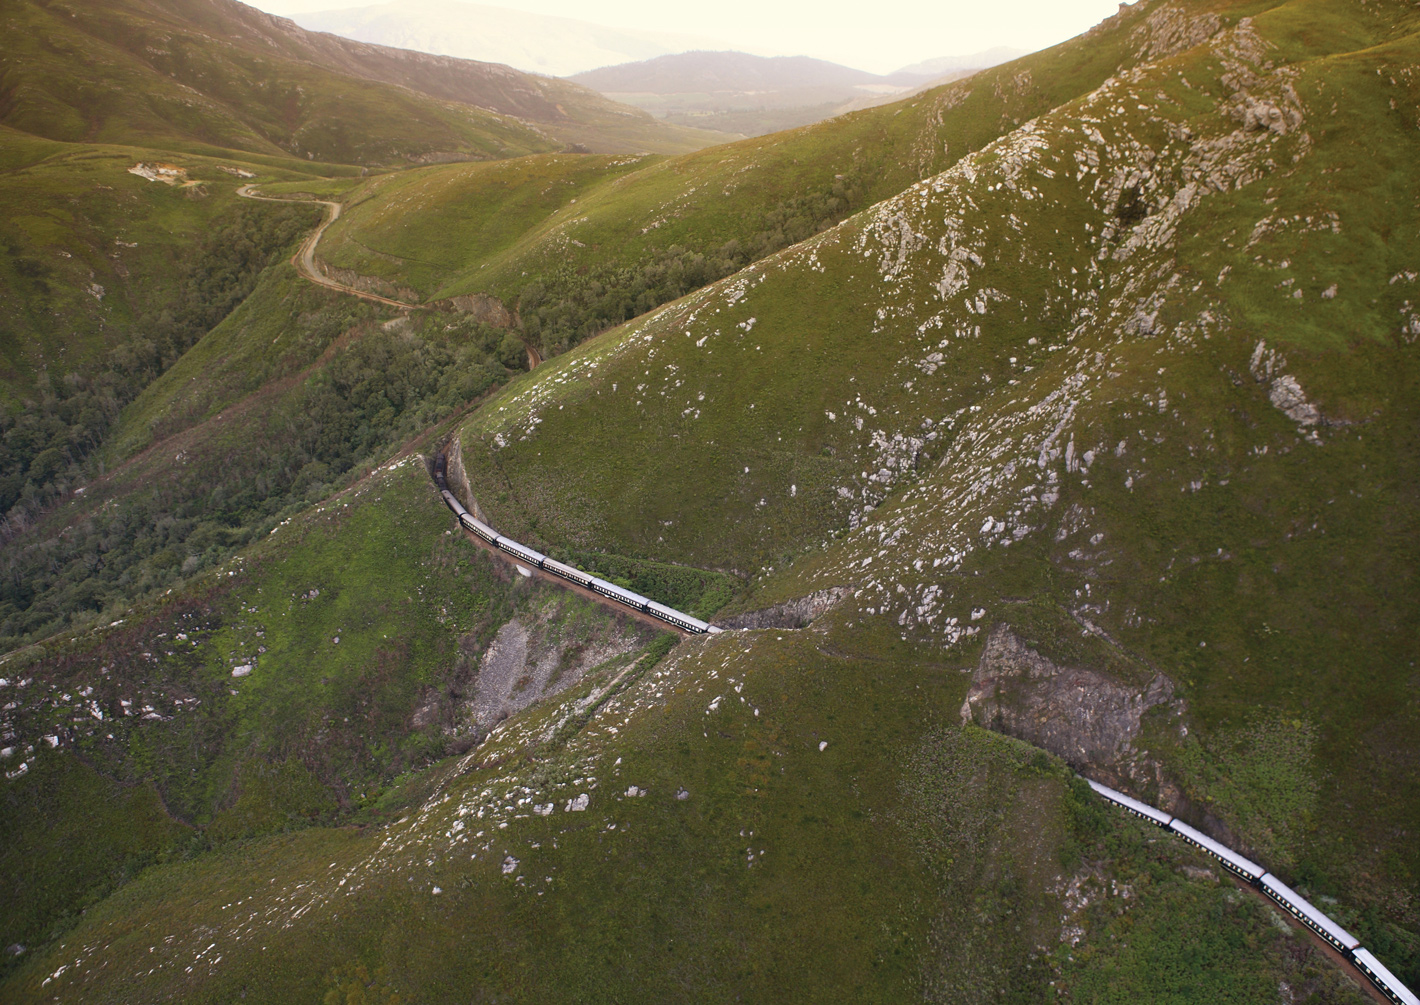 Train going over mountain pass